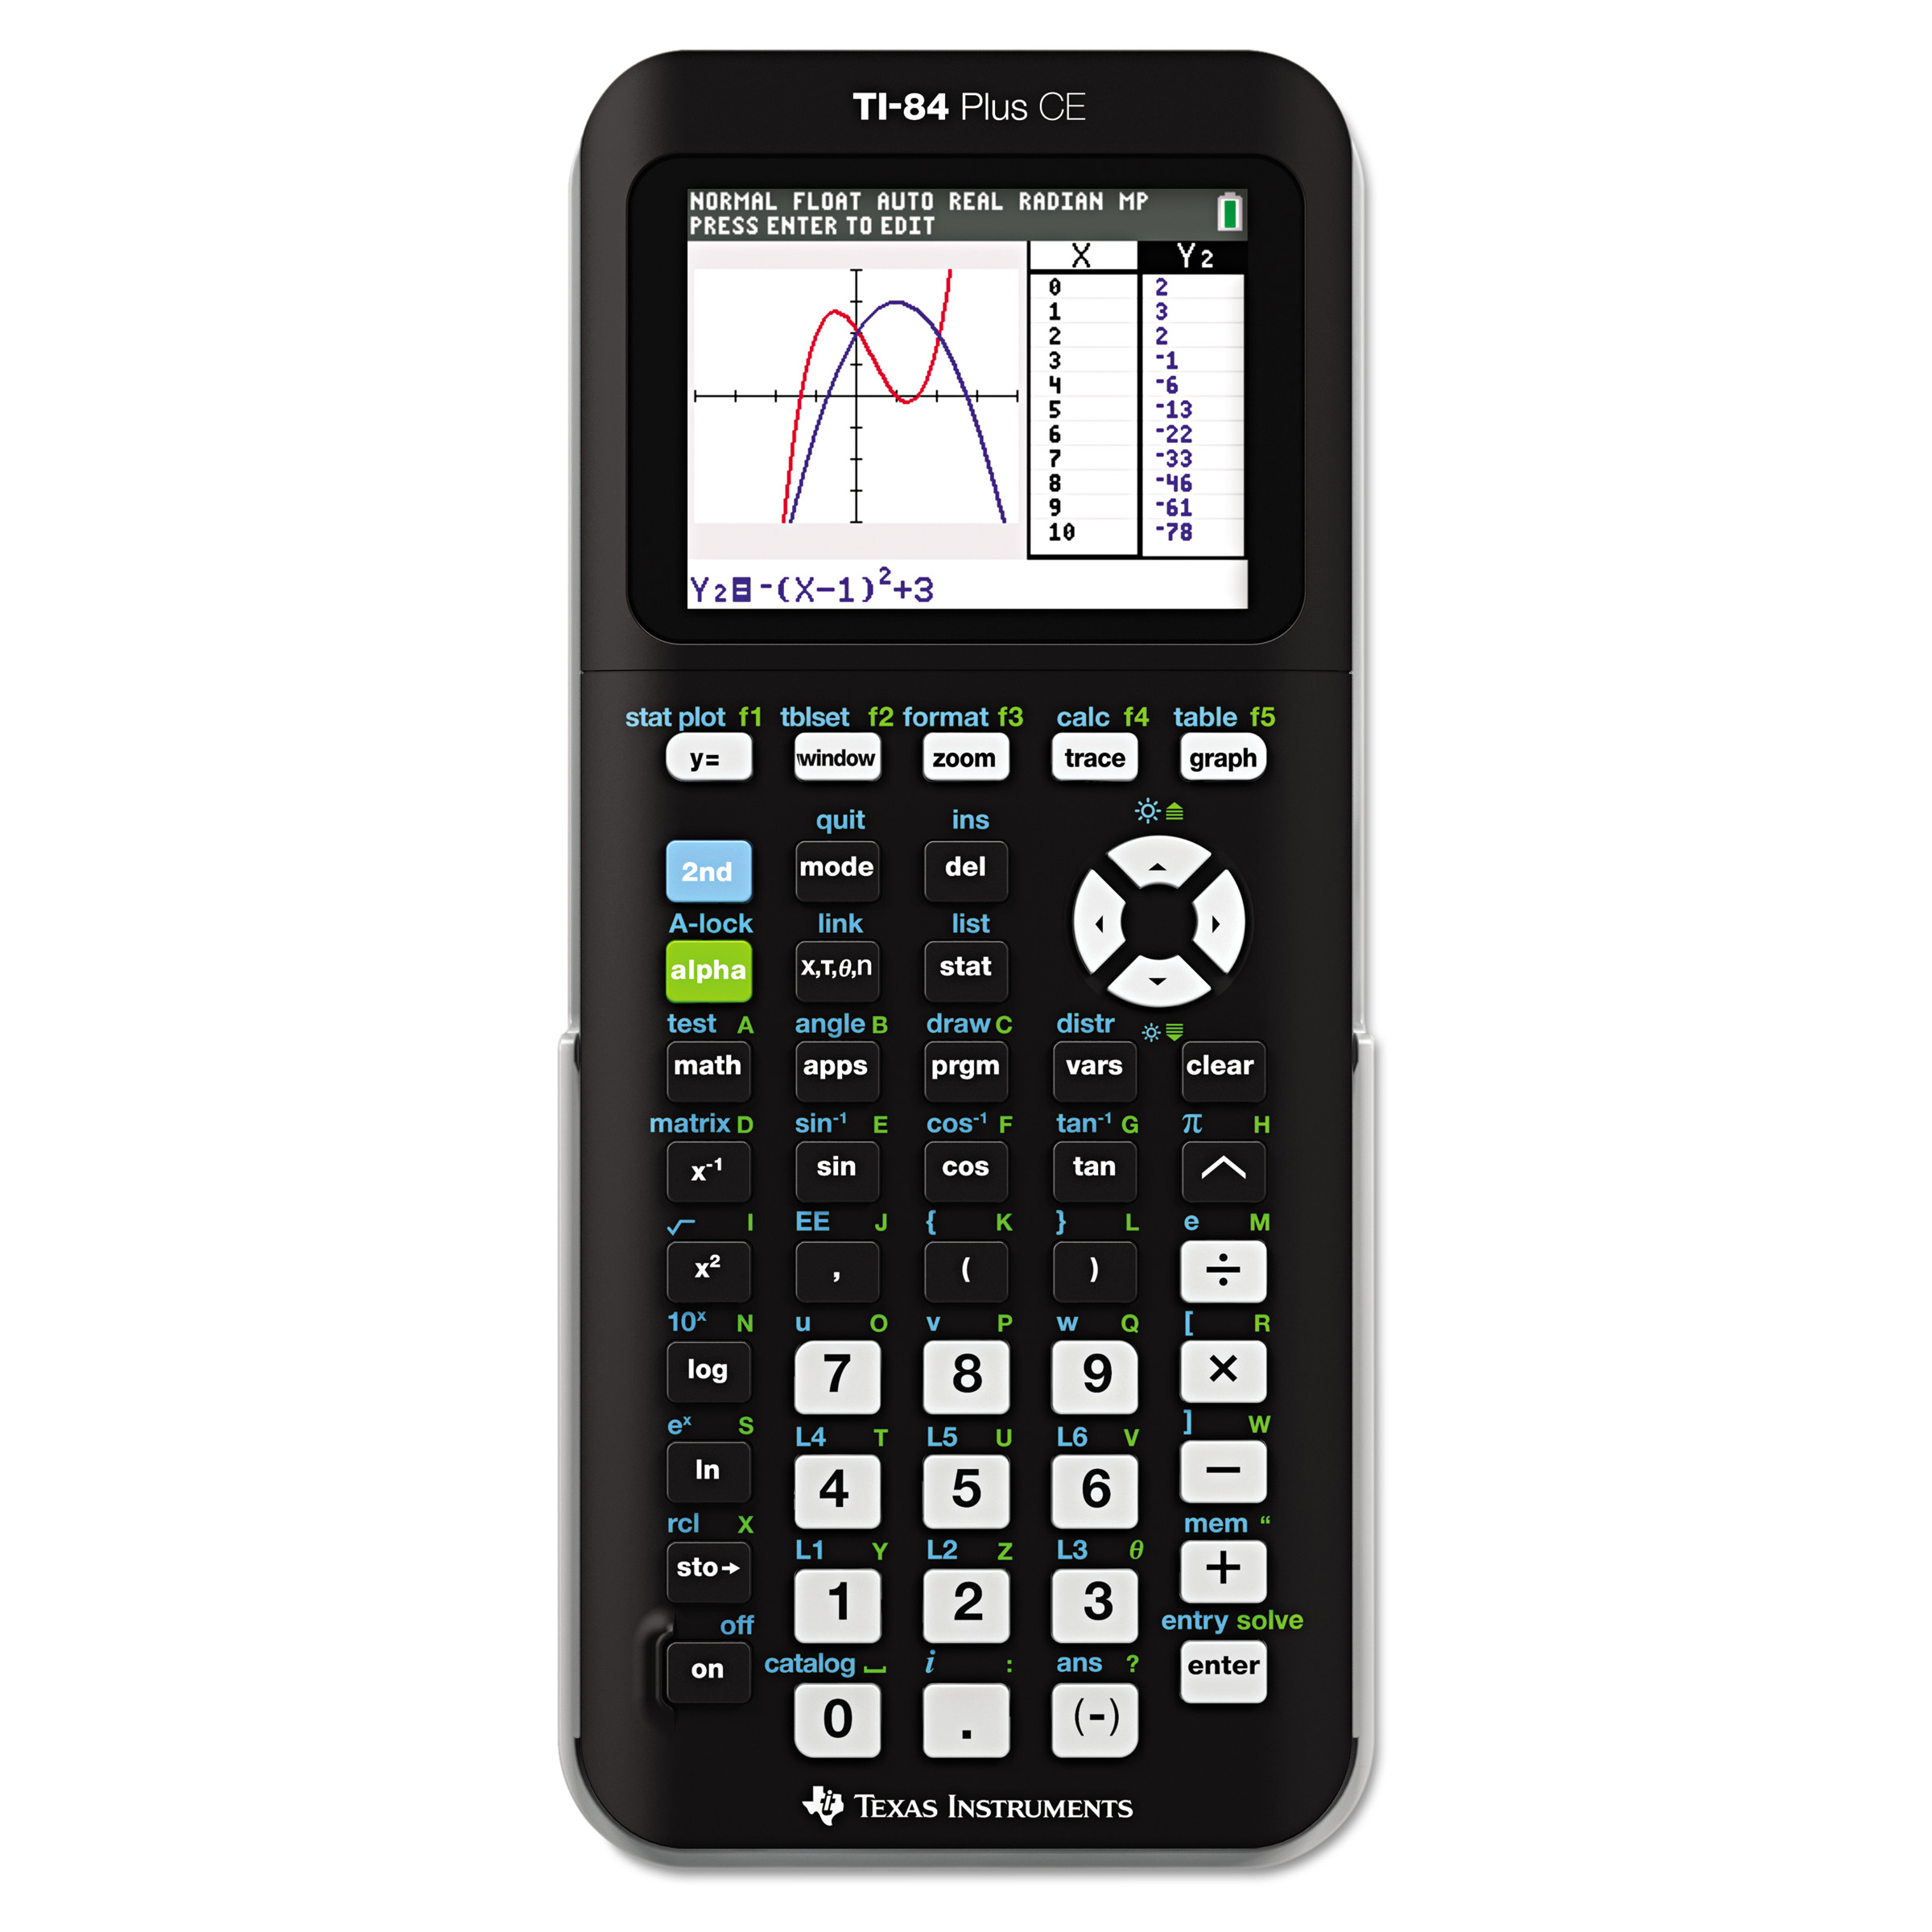 Texas Instruments TI-84 Plus CE Graphing Calculator (Color: Black) by Texas Instruments